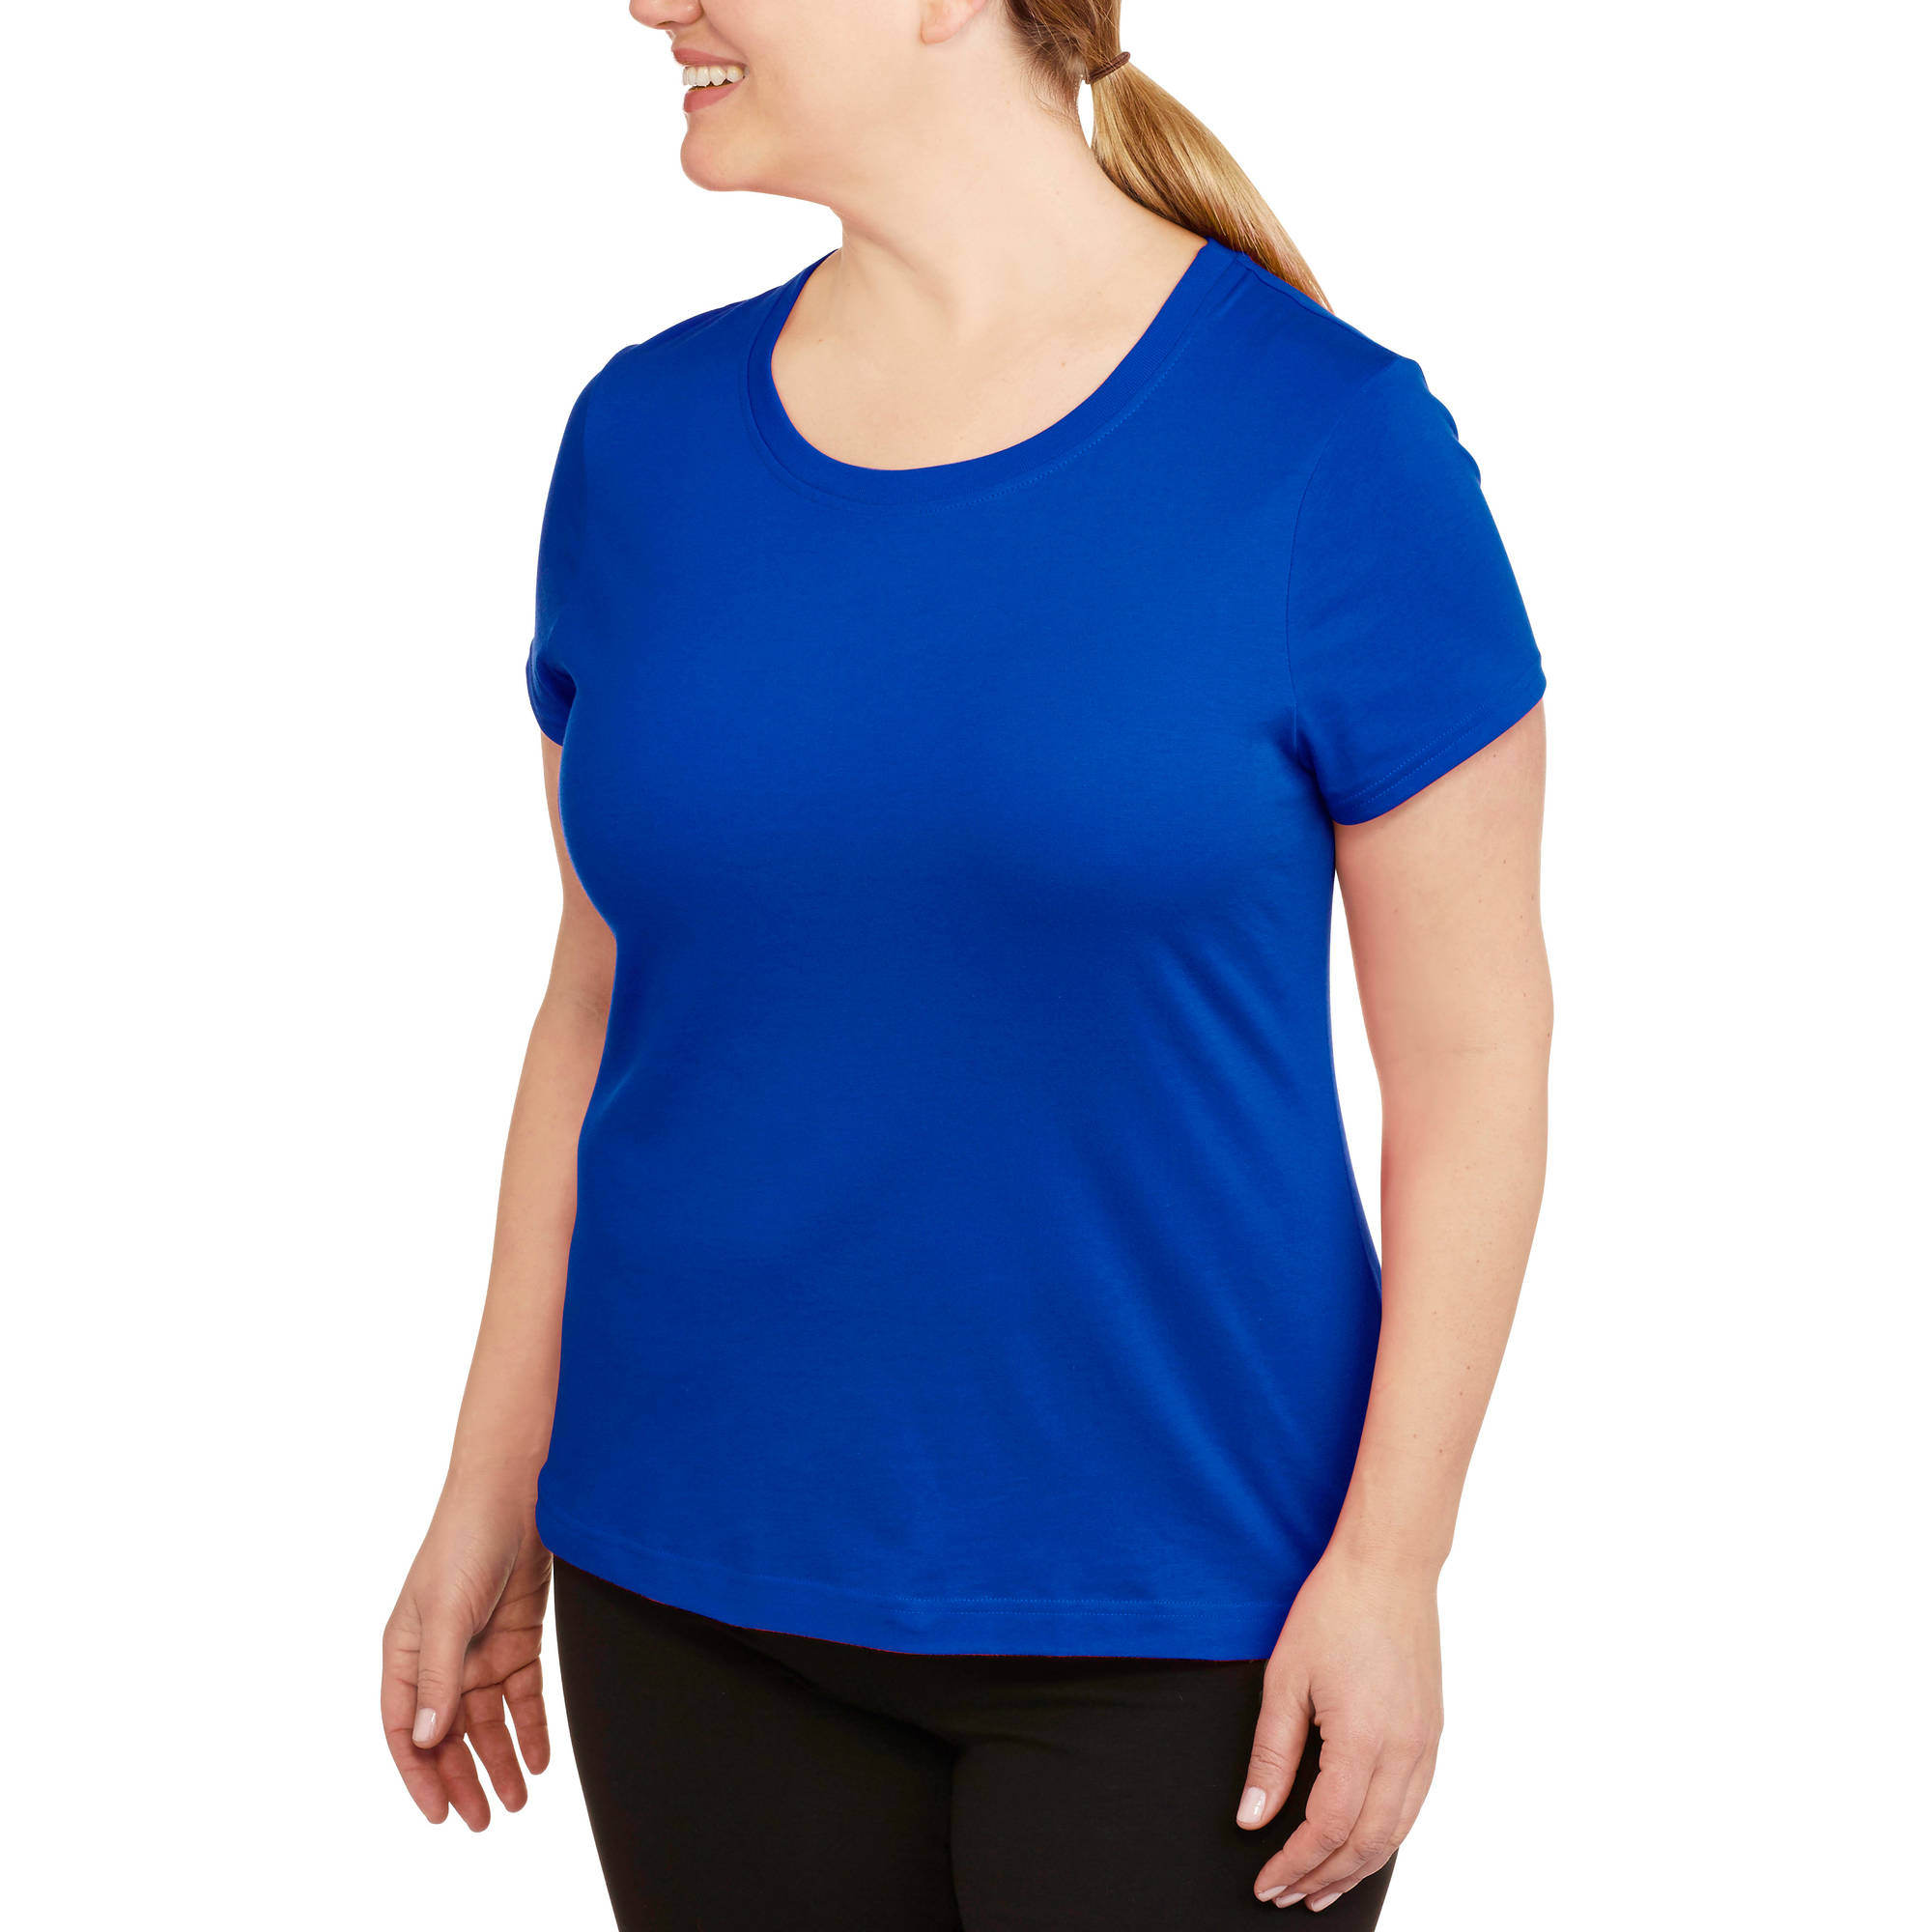 Danskin Now Womens Plus-Size Dri-More Core Workout Tee With Wicking